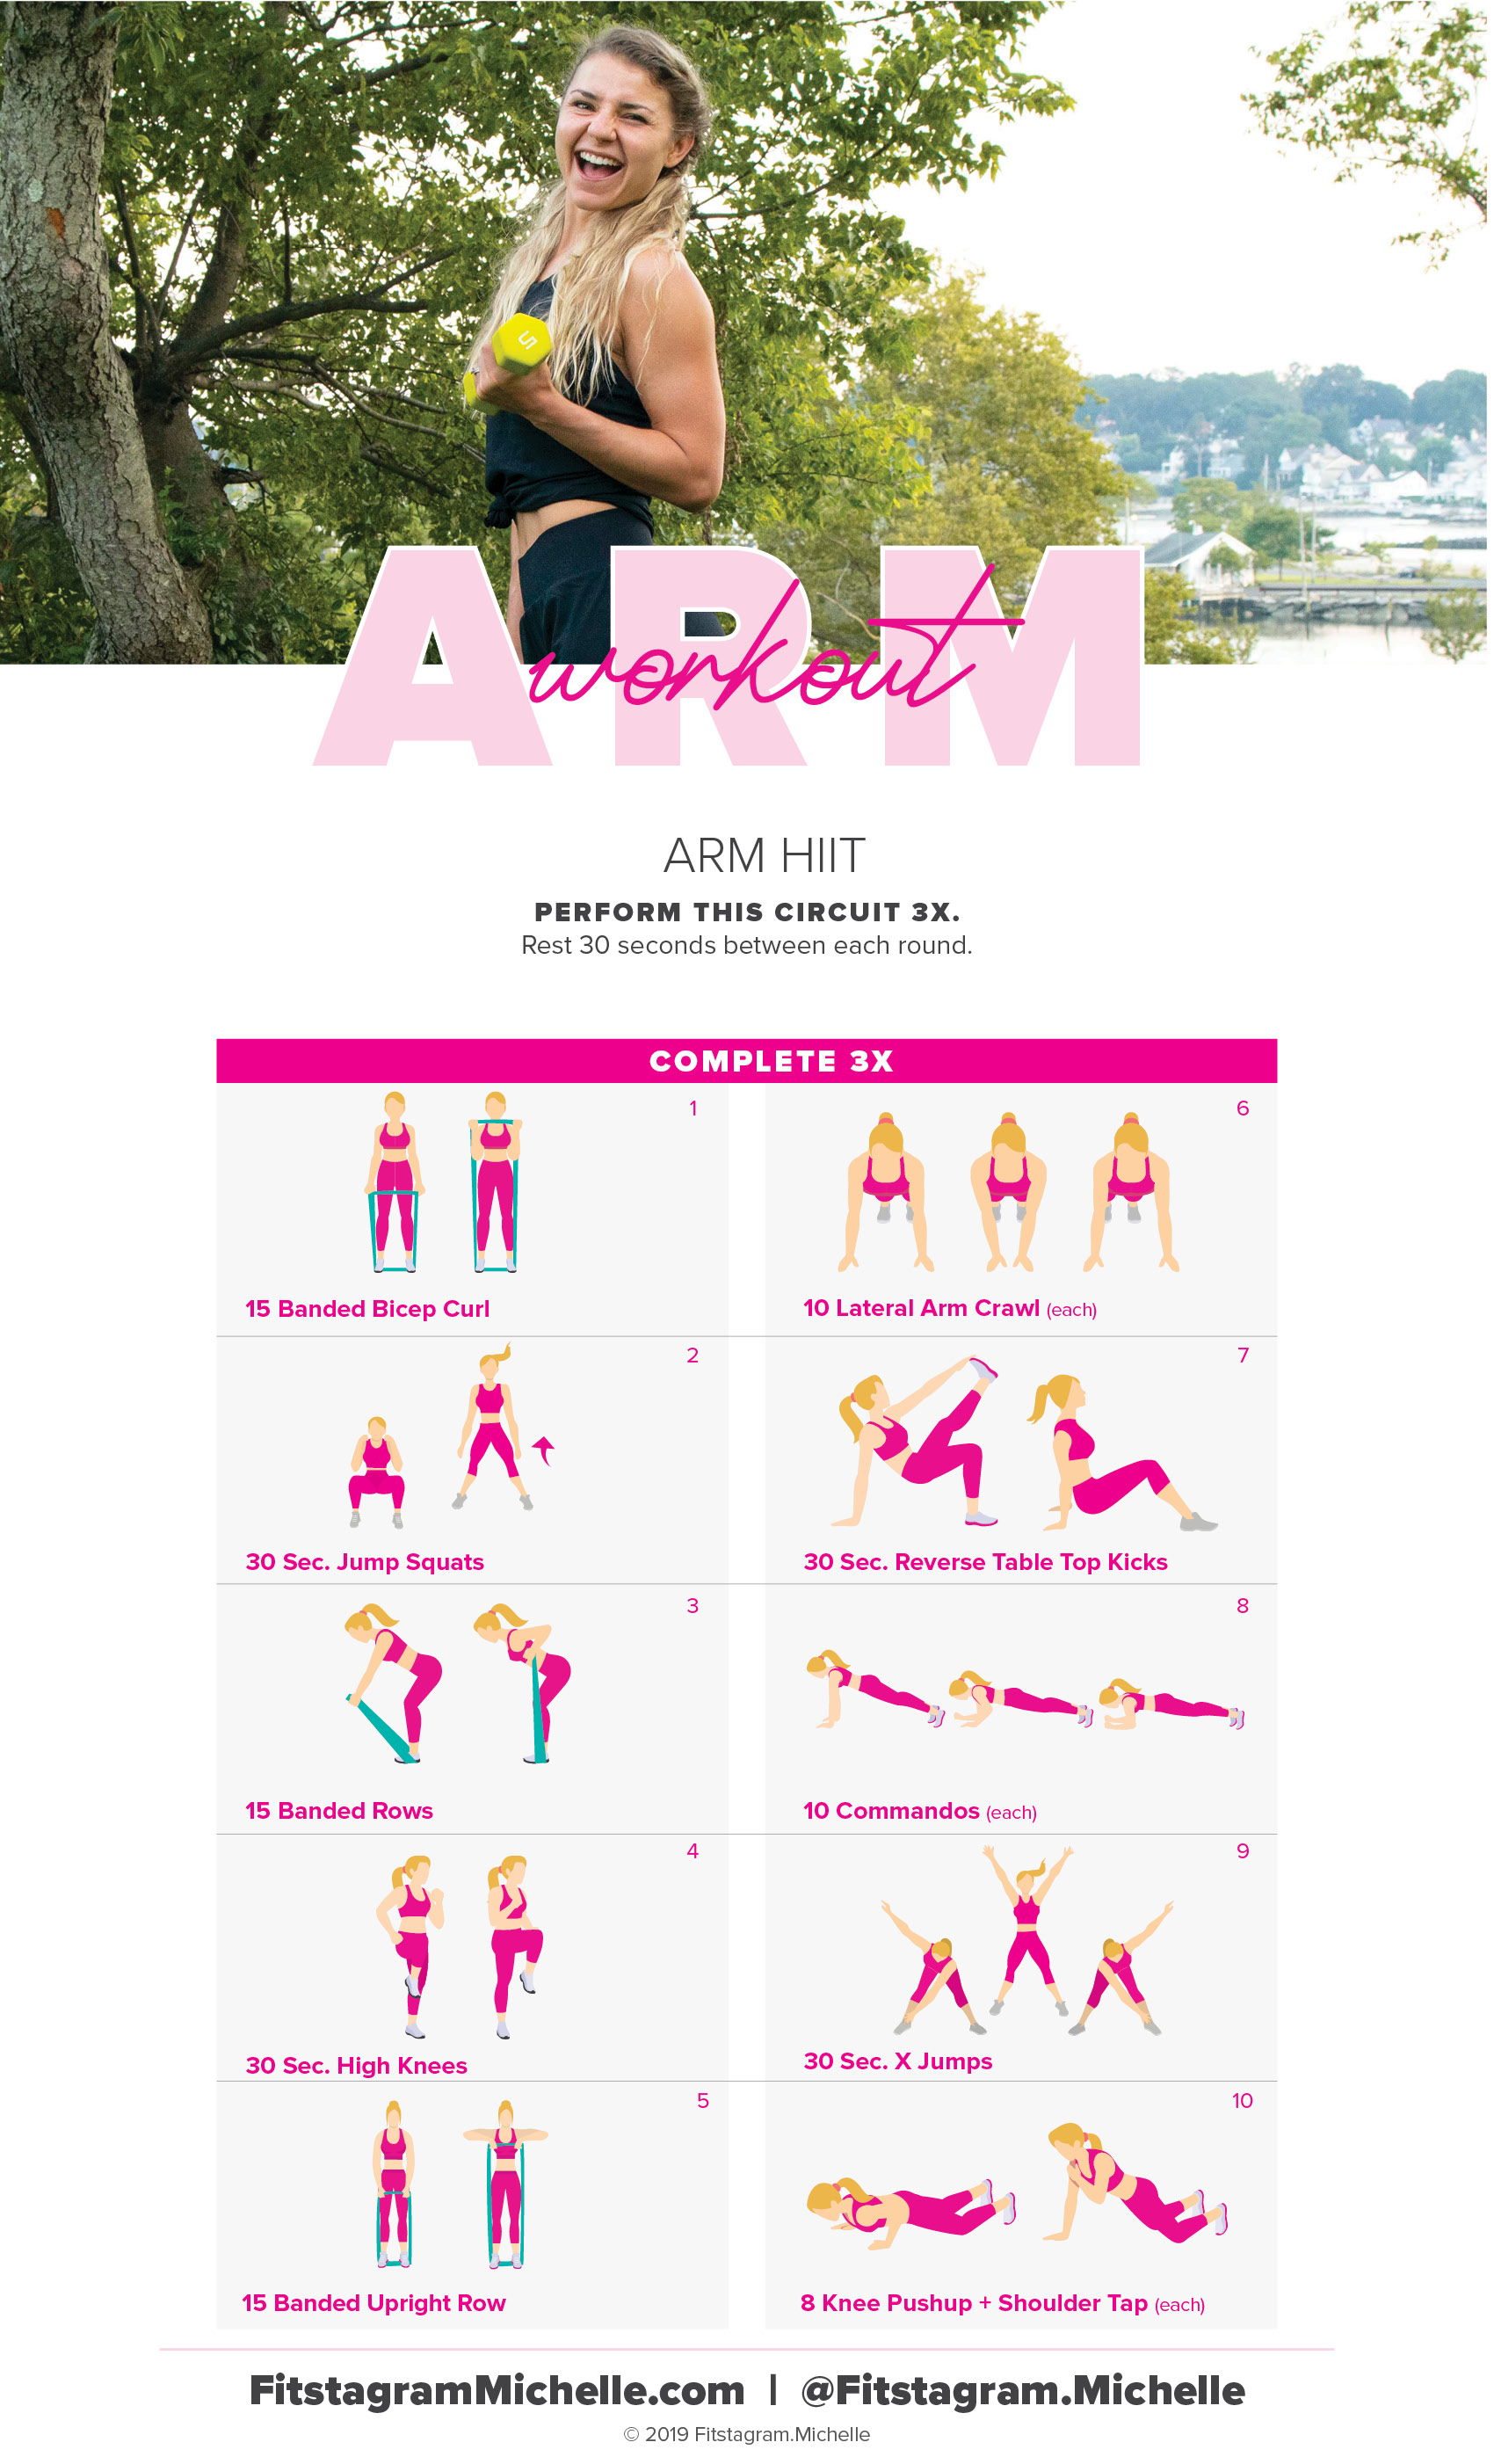 Try this Arm HIIT workout the ultimate burn. Using just 10 moves , you'll form lean muscles.  A women's arm workout to tone up and burn fat.  #womensfitness #weightloss #armworkout #hiitworkout #womensarmworkout